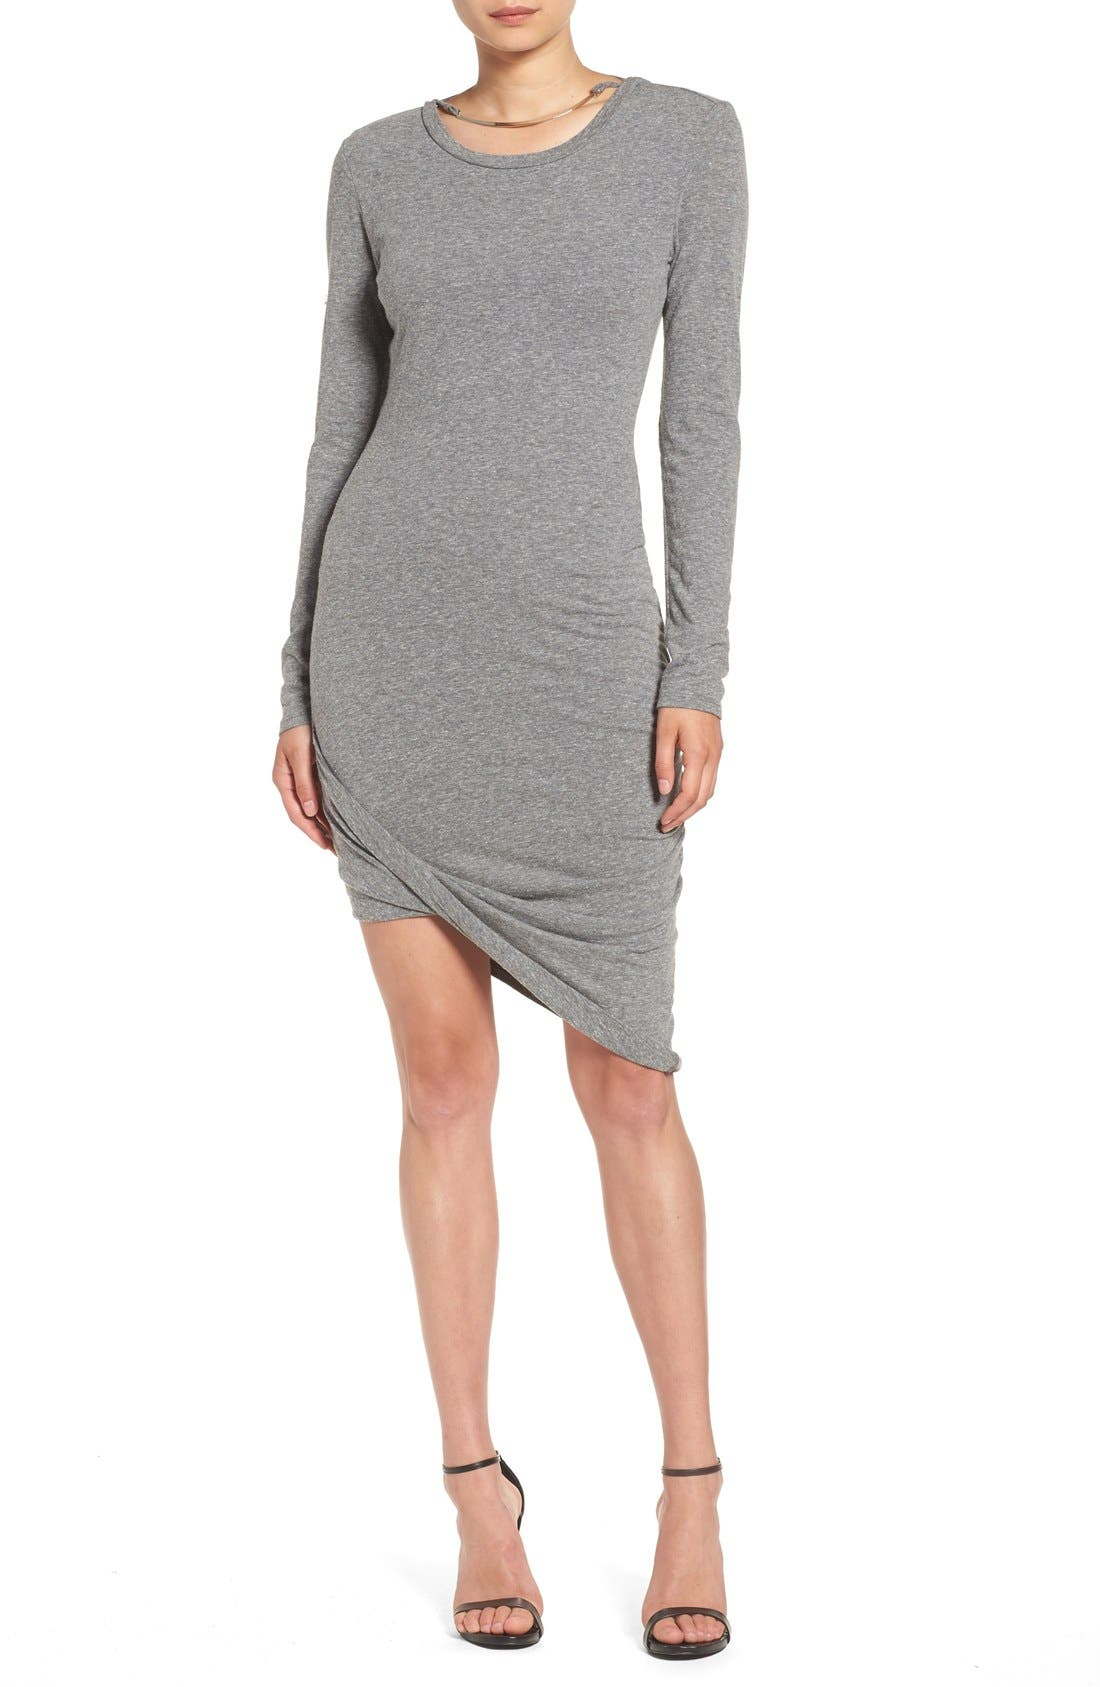 Main Image - Pam & Gela Asymmetrical Hem T-Shirt Dress